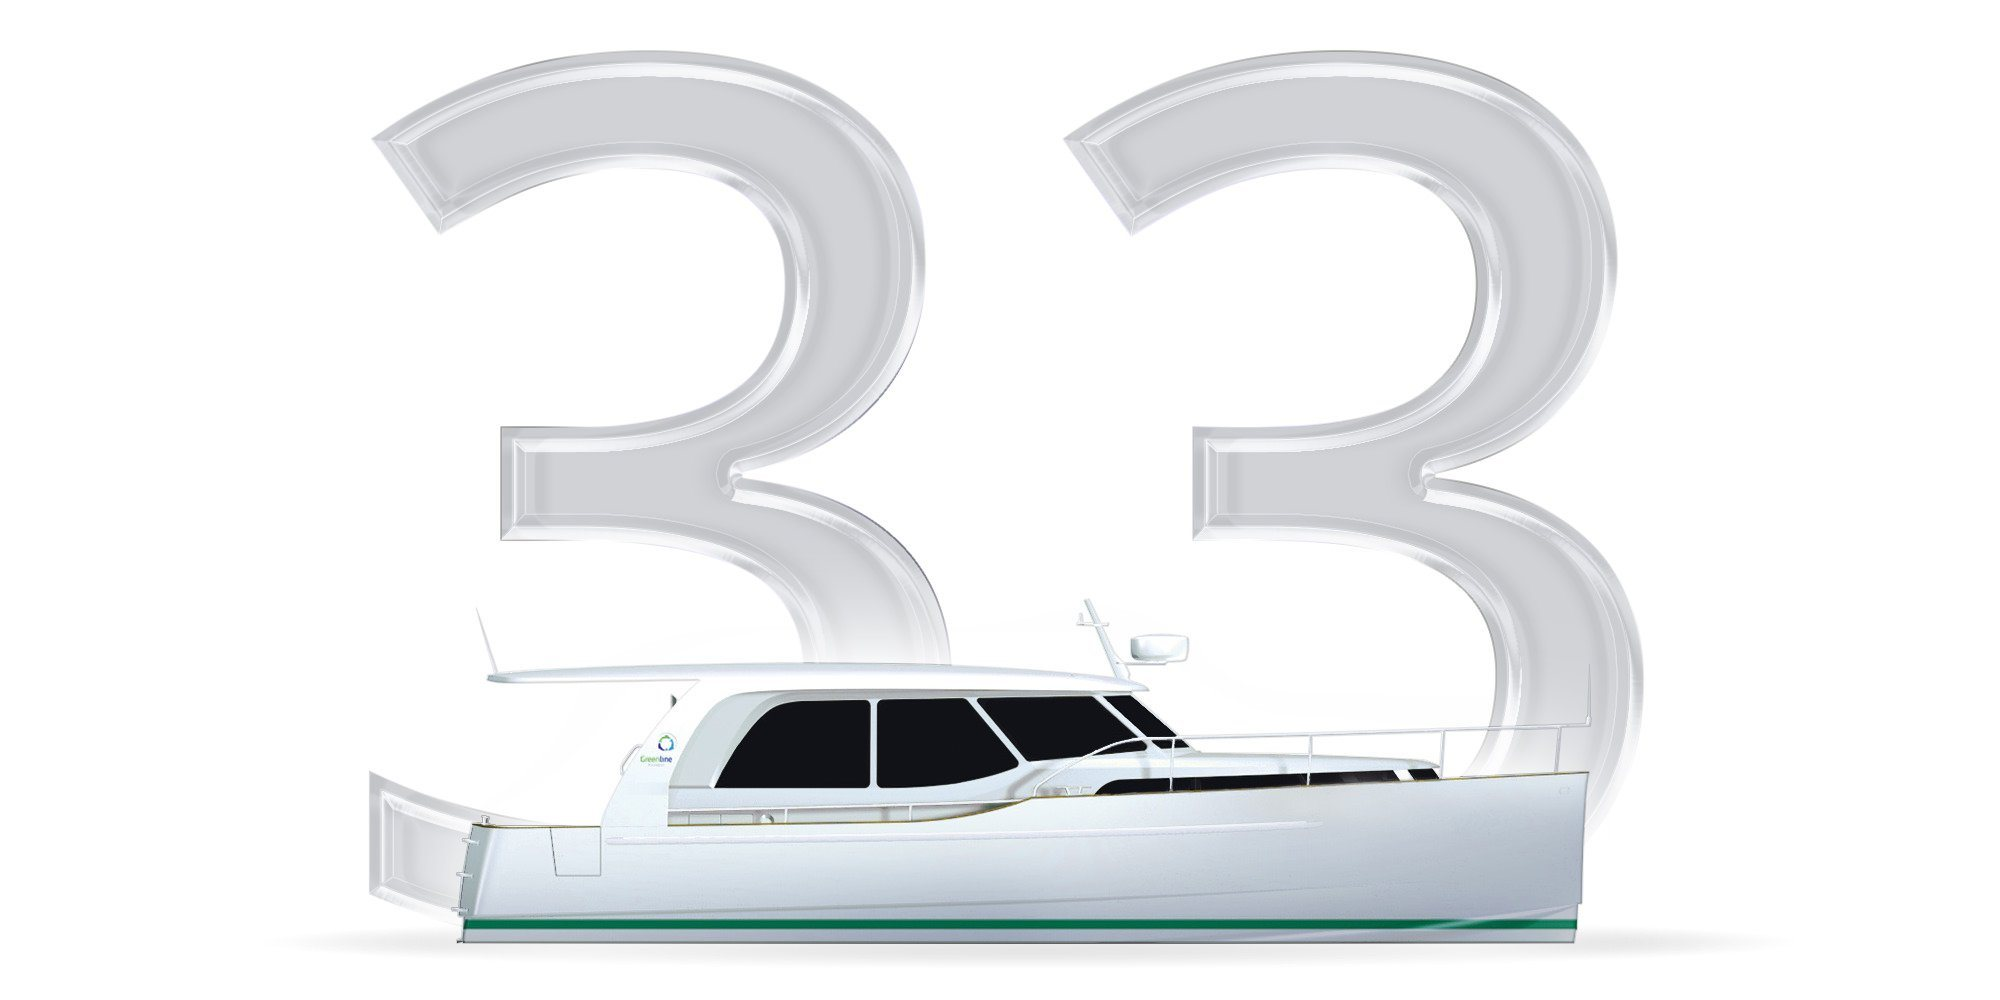 The Perfect Cruiser for Family Cruising. Here you see a Thumbnail with the number 33 and a graphically represented Yacht of the Greenline Class 33. A Slider over the thumbnail shows the following information about the Greenline 33: Length overall: 9,99m Beam overall: 3,49m Base Price: 139.900,00€